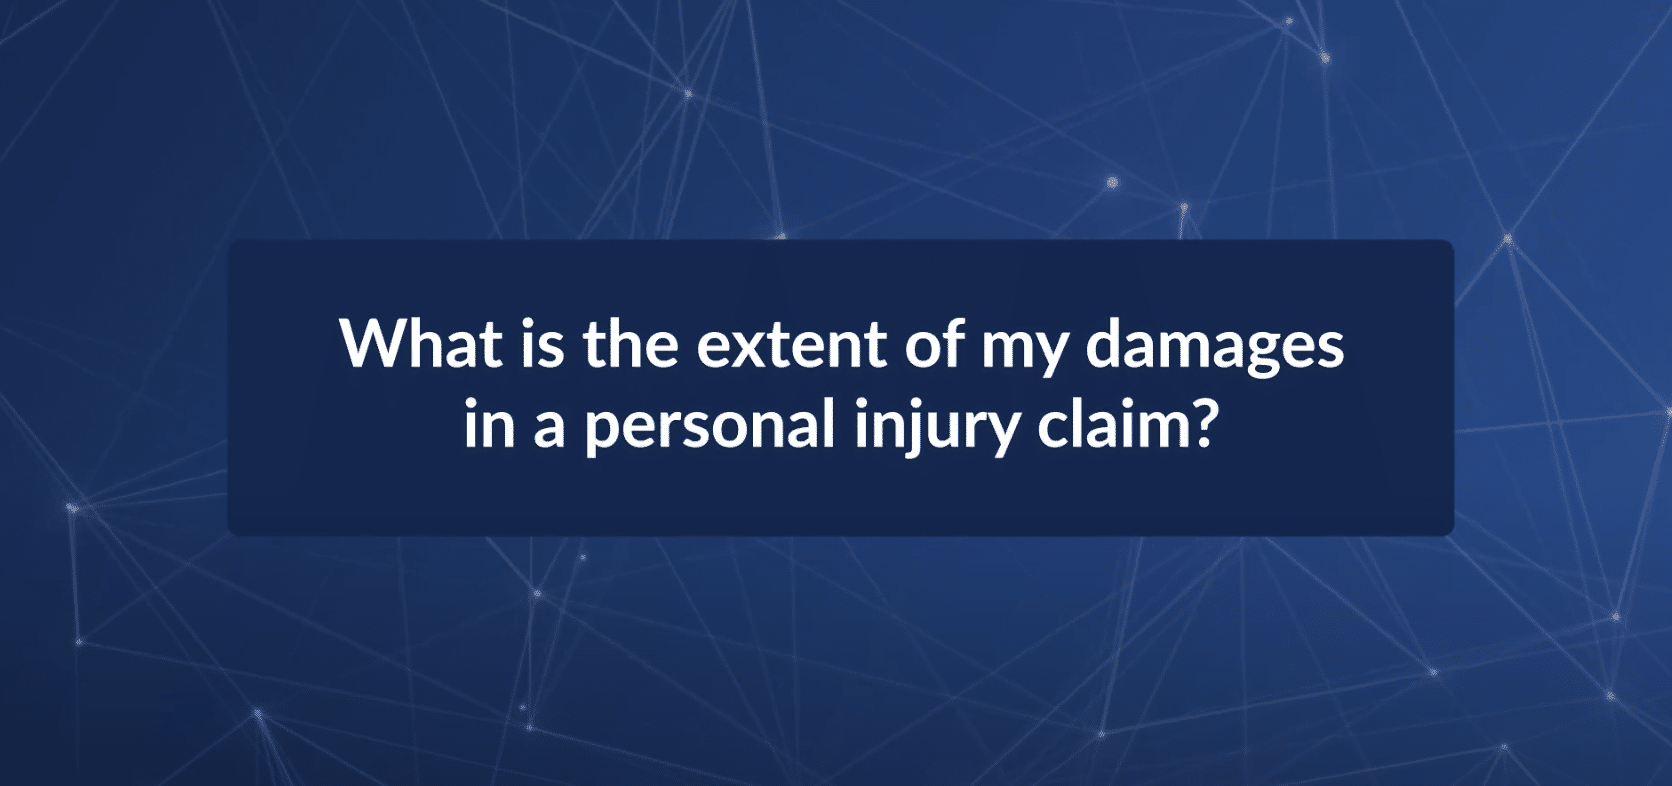 What is the Extent of My Damages in a Personal Injury Claim?